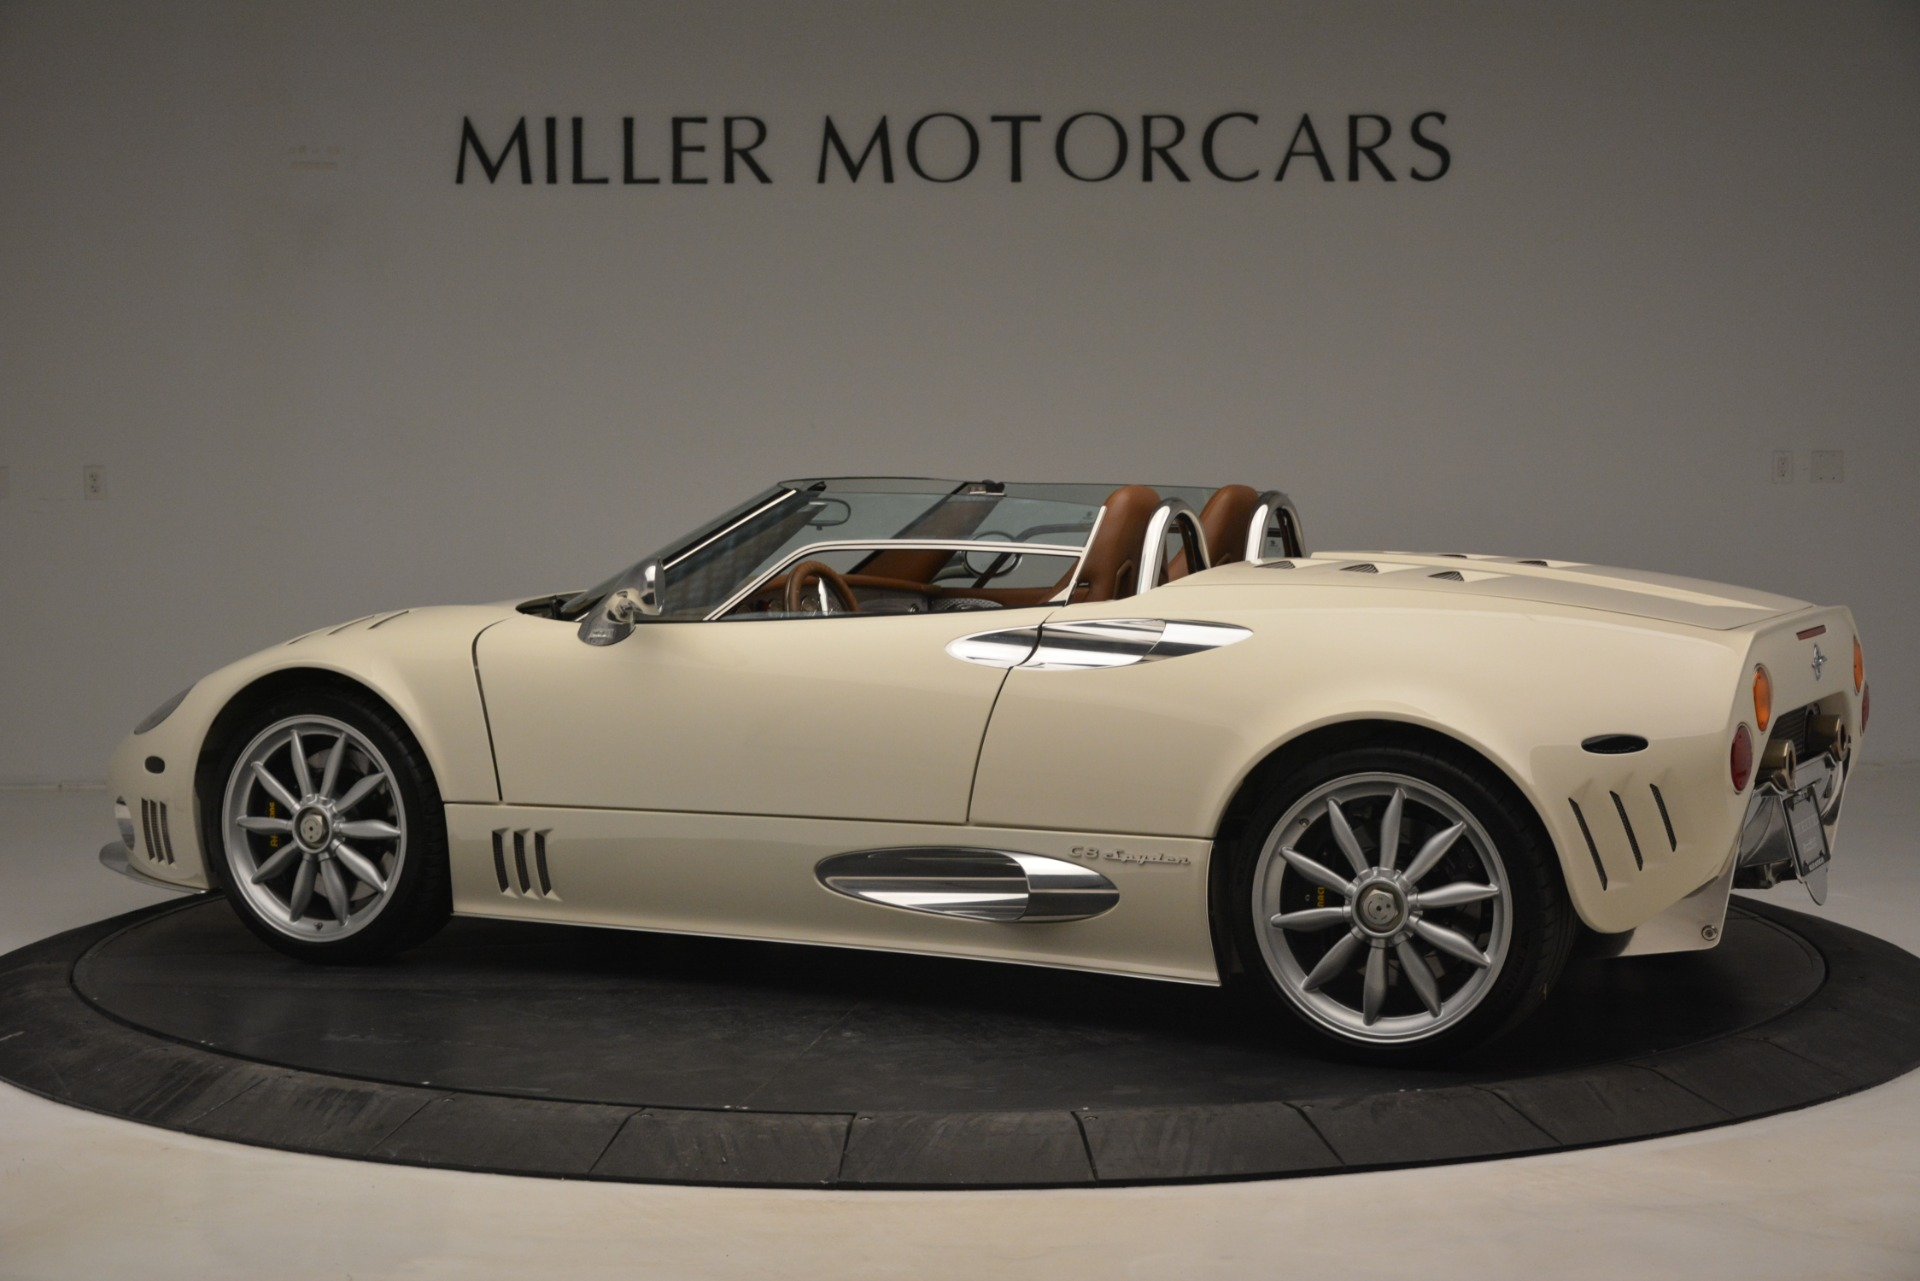 Used 2006 Spyker C8 Spyder  For Sale In Greenwich, CT 1661_p4